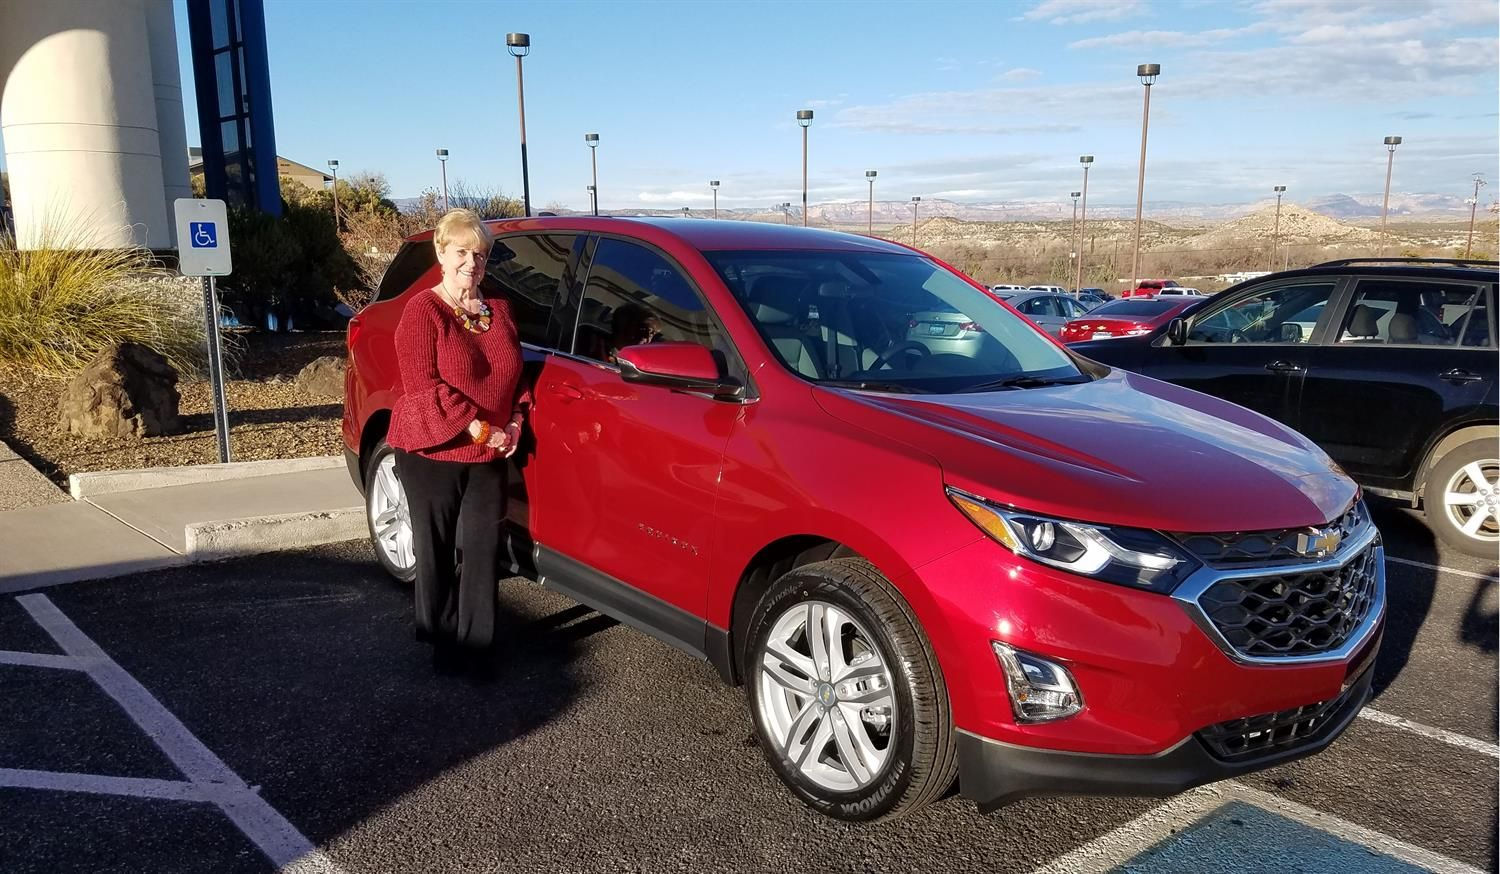 Awesome Congratulations To Babara On Your New 2019 Chevrolet Equinox Thank You Again Larry Green Chevrolet And Antho Chevrolet Equinox Chevrolet Valenzuela